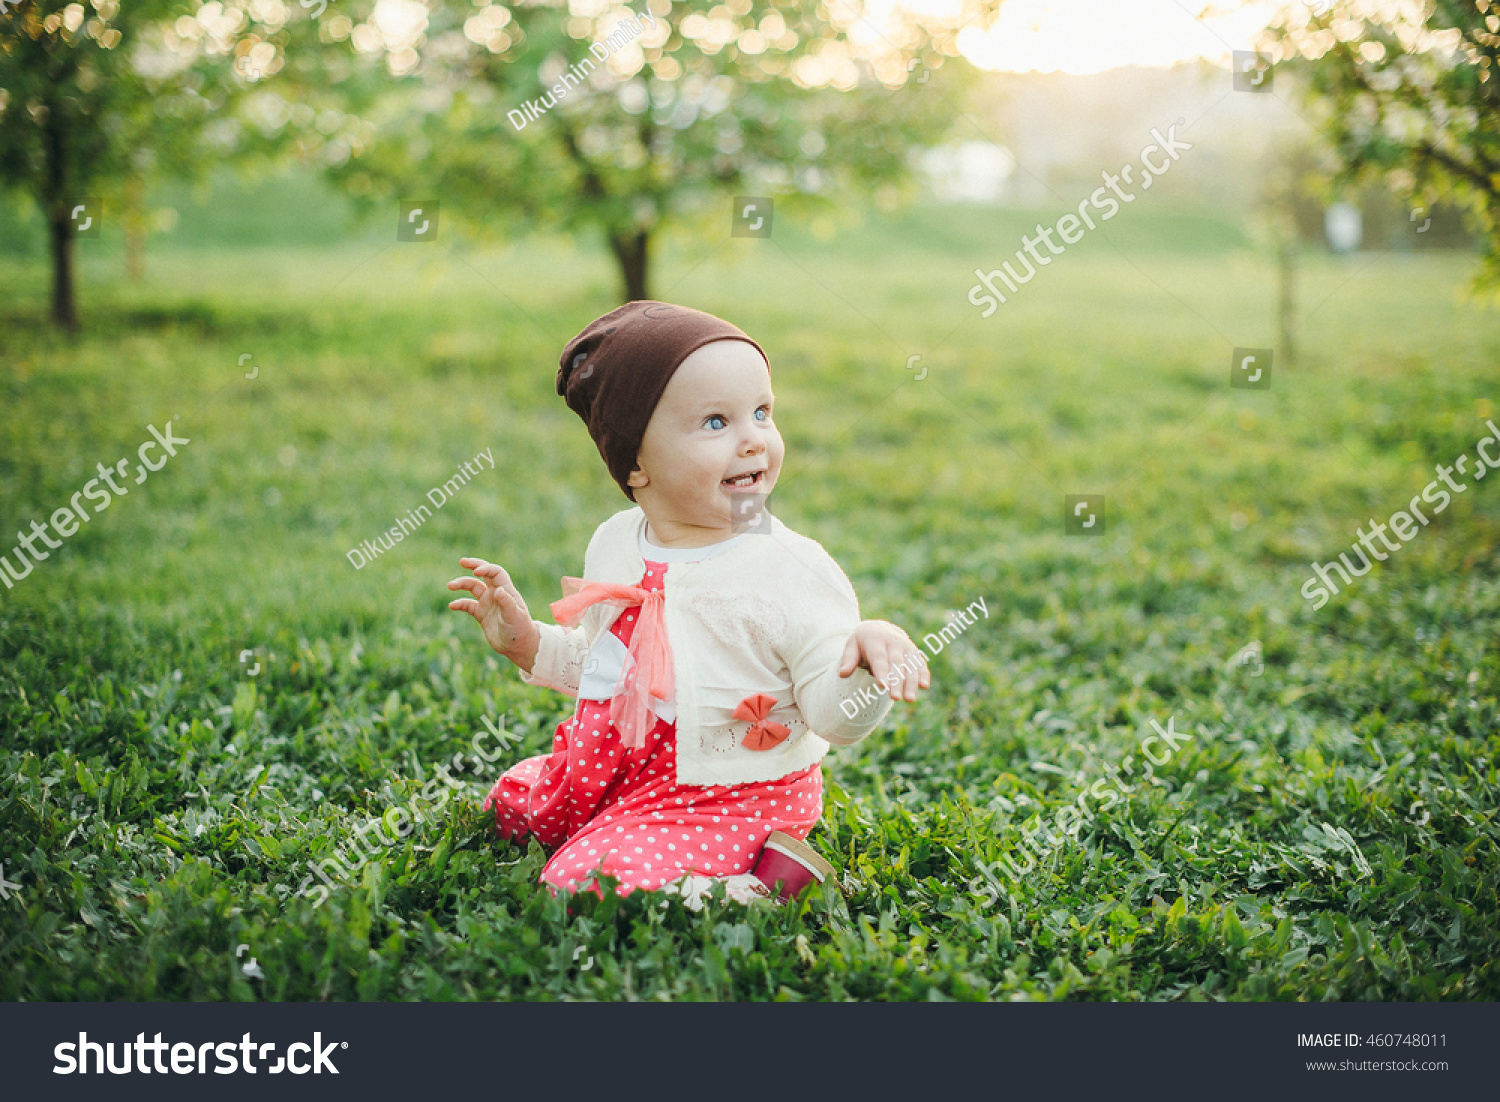 nice baby girl green meadow stock photo (100% legal protection